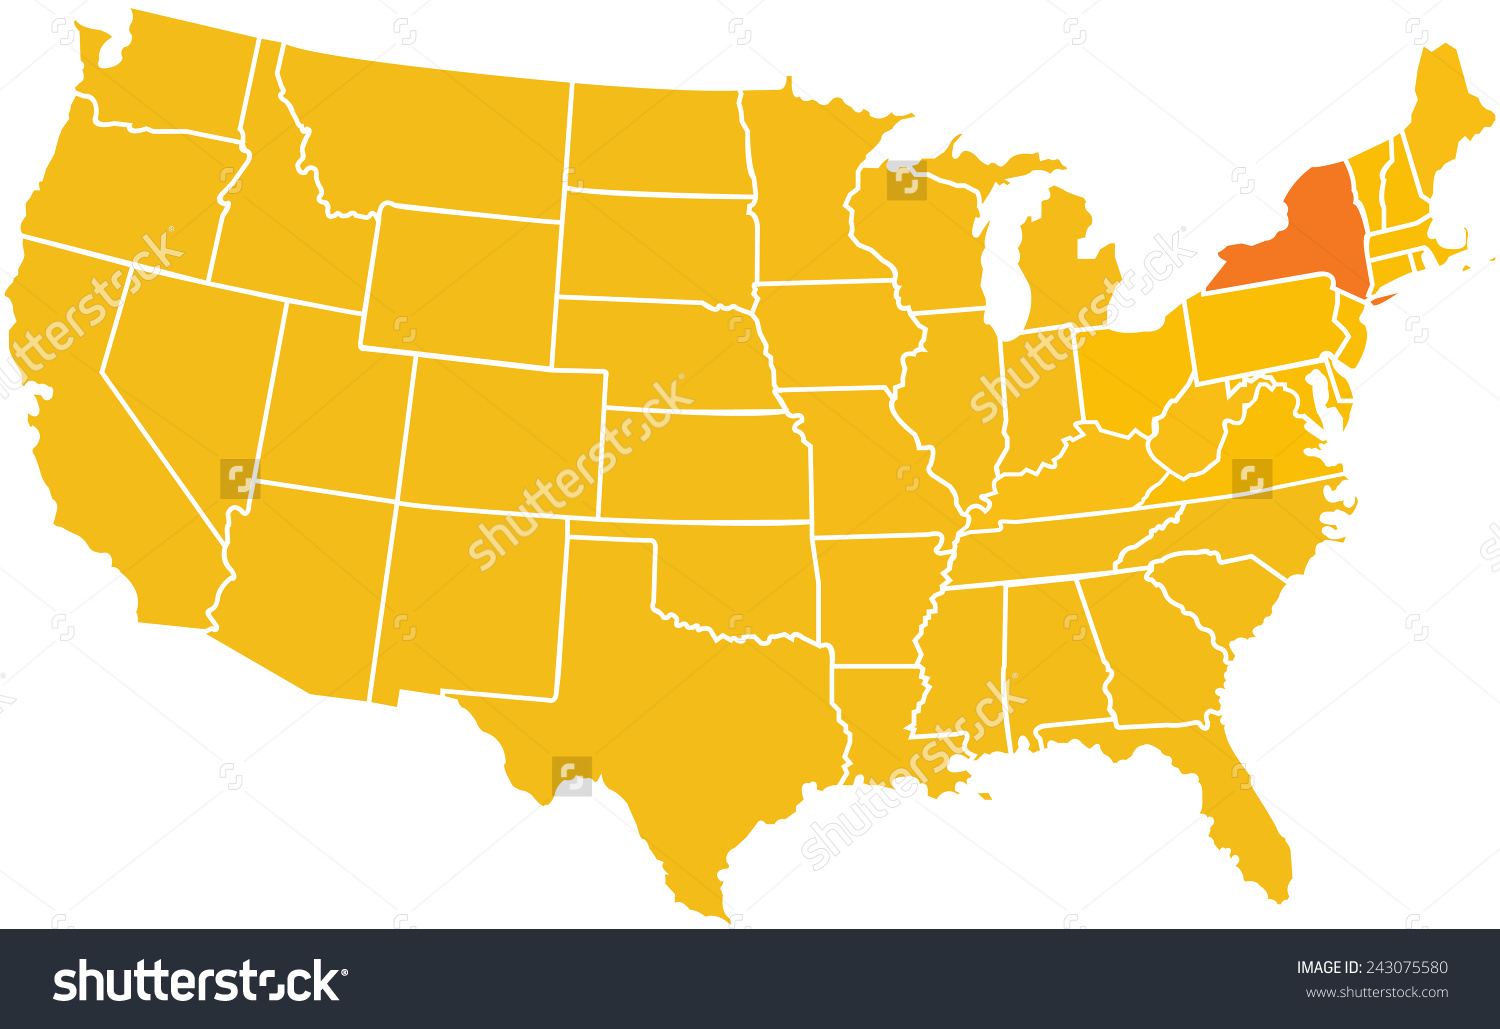 stock photo map of the continental united states with the state of     stock photo map of the continental united states with the state of  new york highlighted in darker orange color 243075580